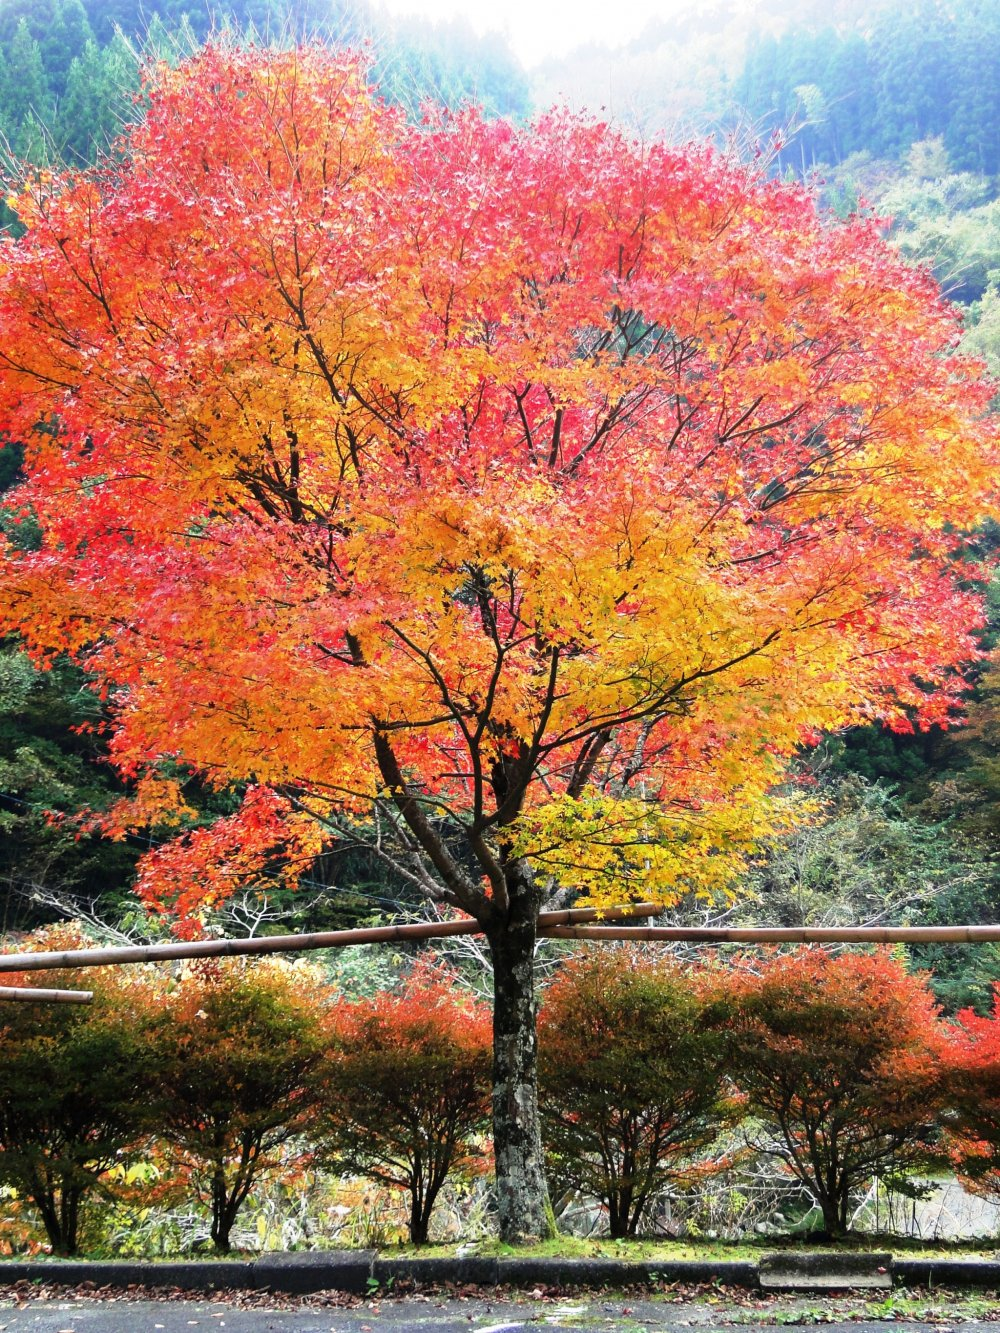 A tree turns colors deep in the mountains of Gokanosho